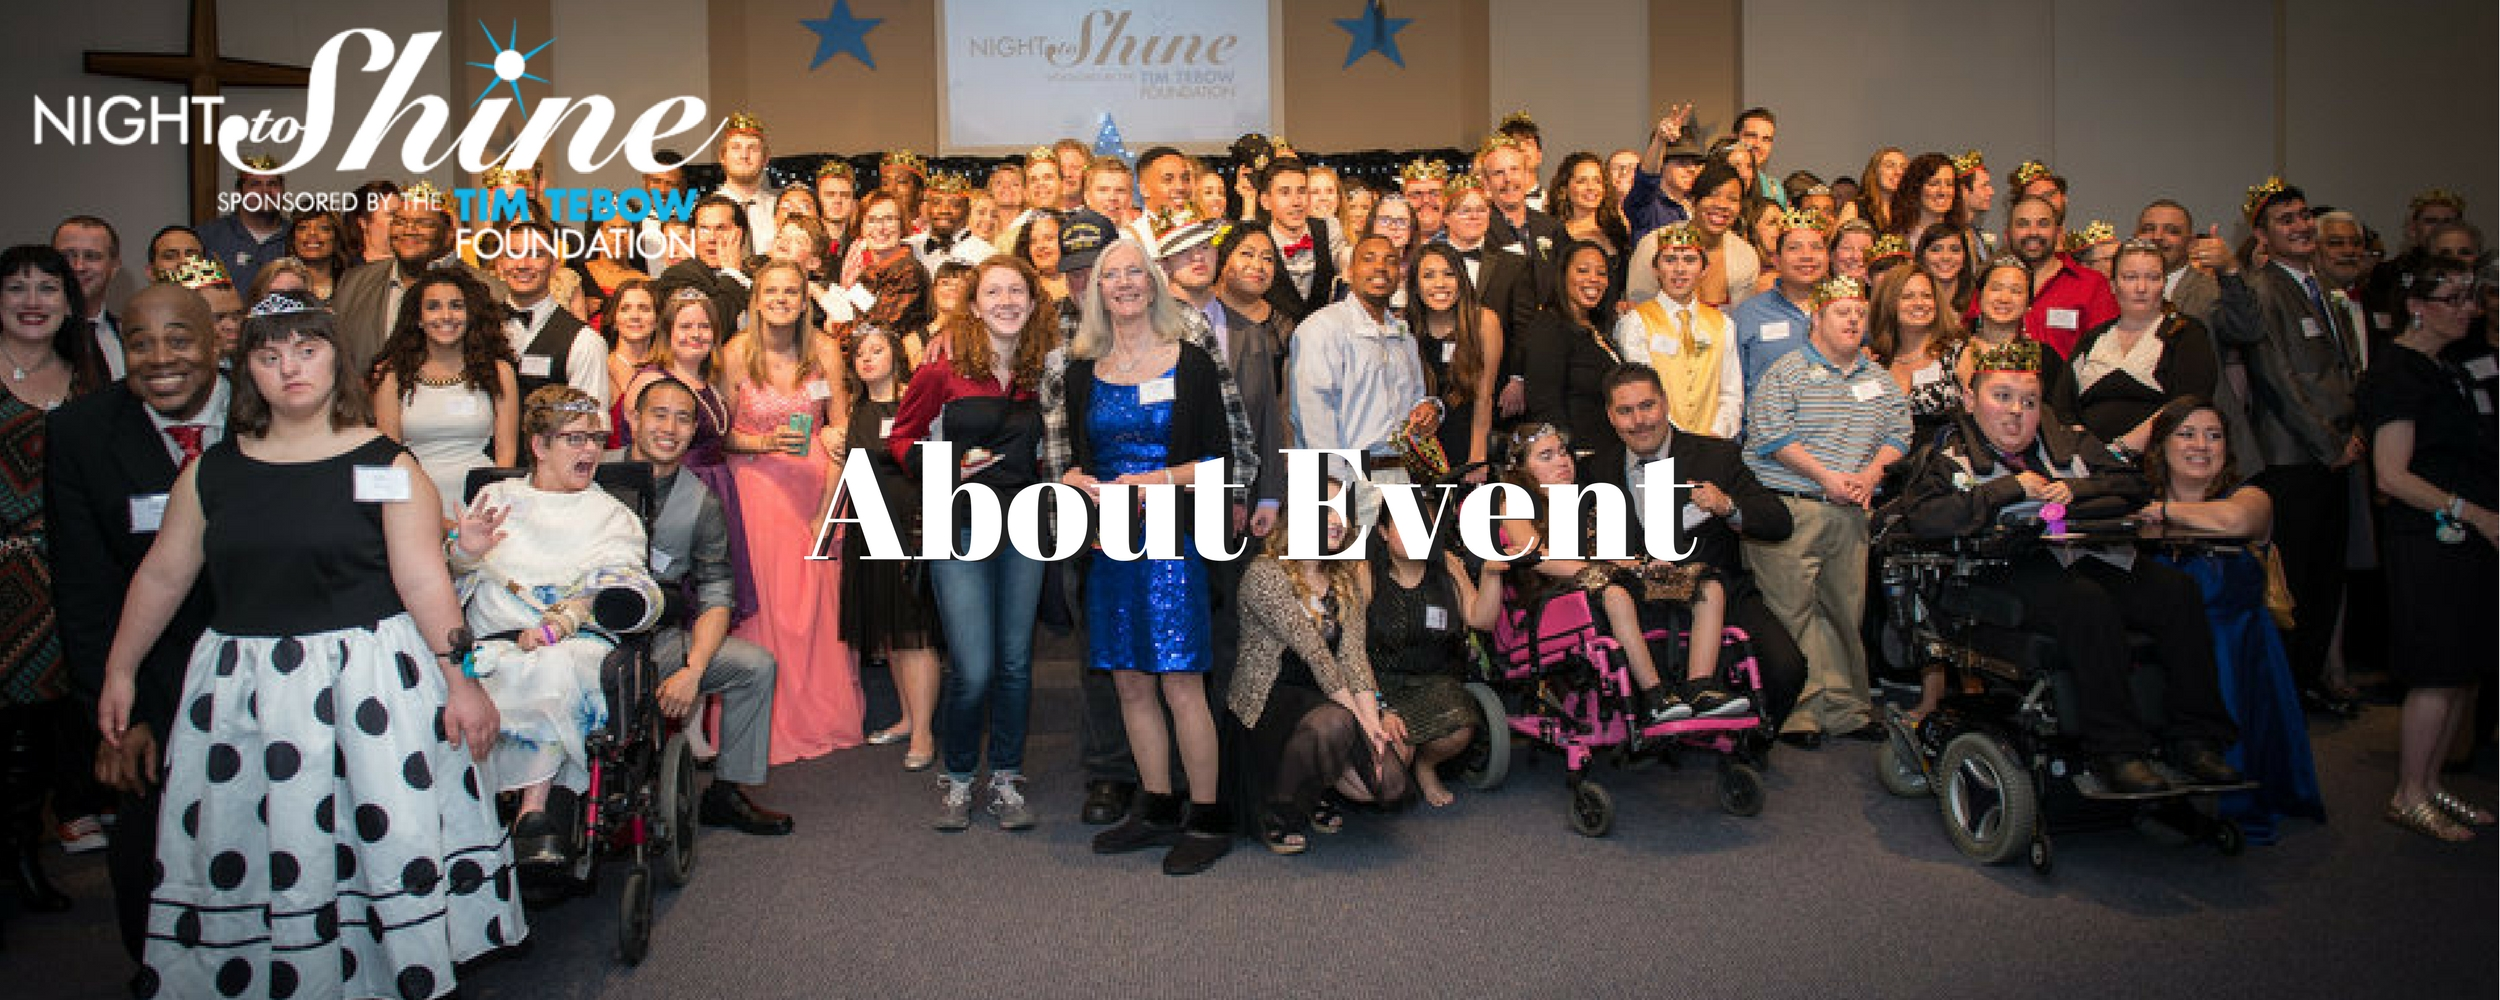 Copy of COMMITTED TO CELEBRATING PEOPLE WITH SPECIAL NEEDS.jpg